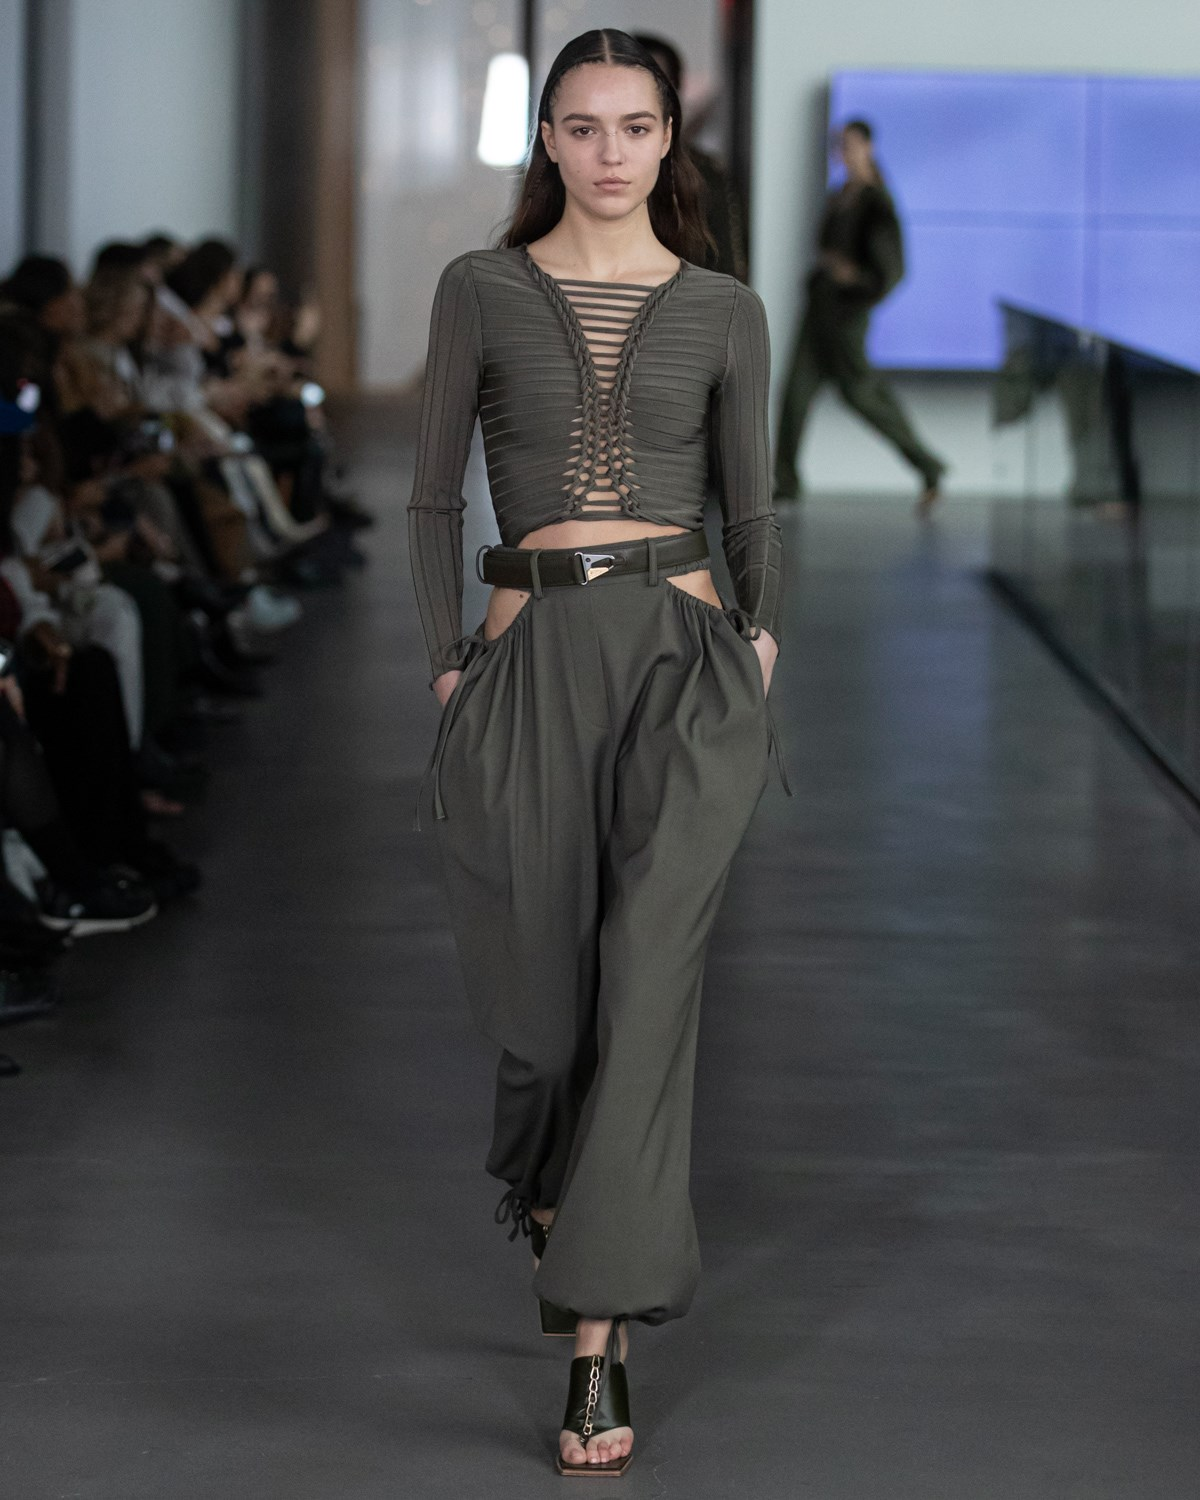 Loden Green Fall 2020 Fashion Trend Photos